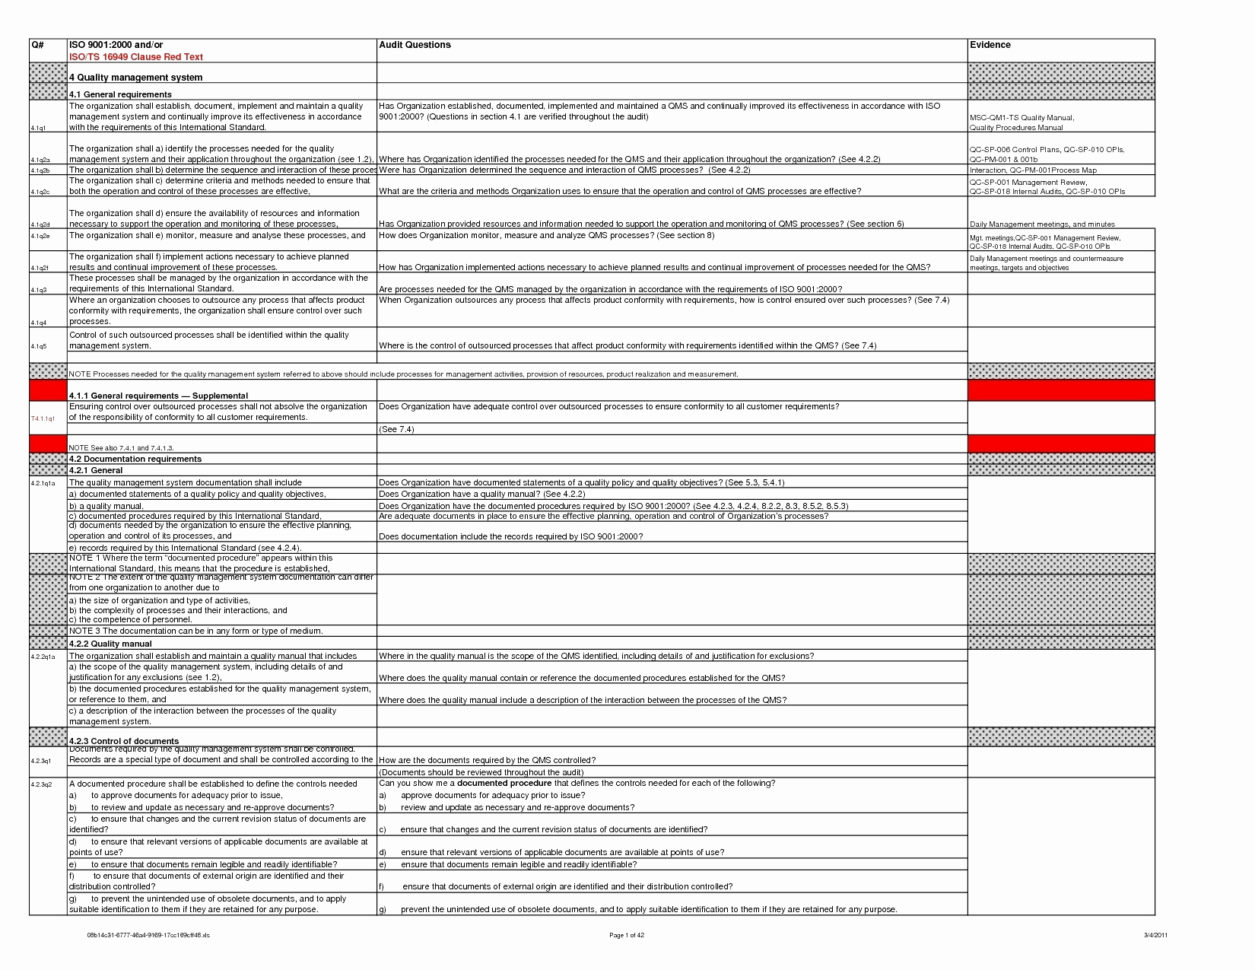 Iso 27001 Checklist Xls Awesome Iso Checklist Xls Best Iso Controls For Iso 27001 Controls Spreadsheet